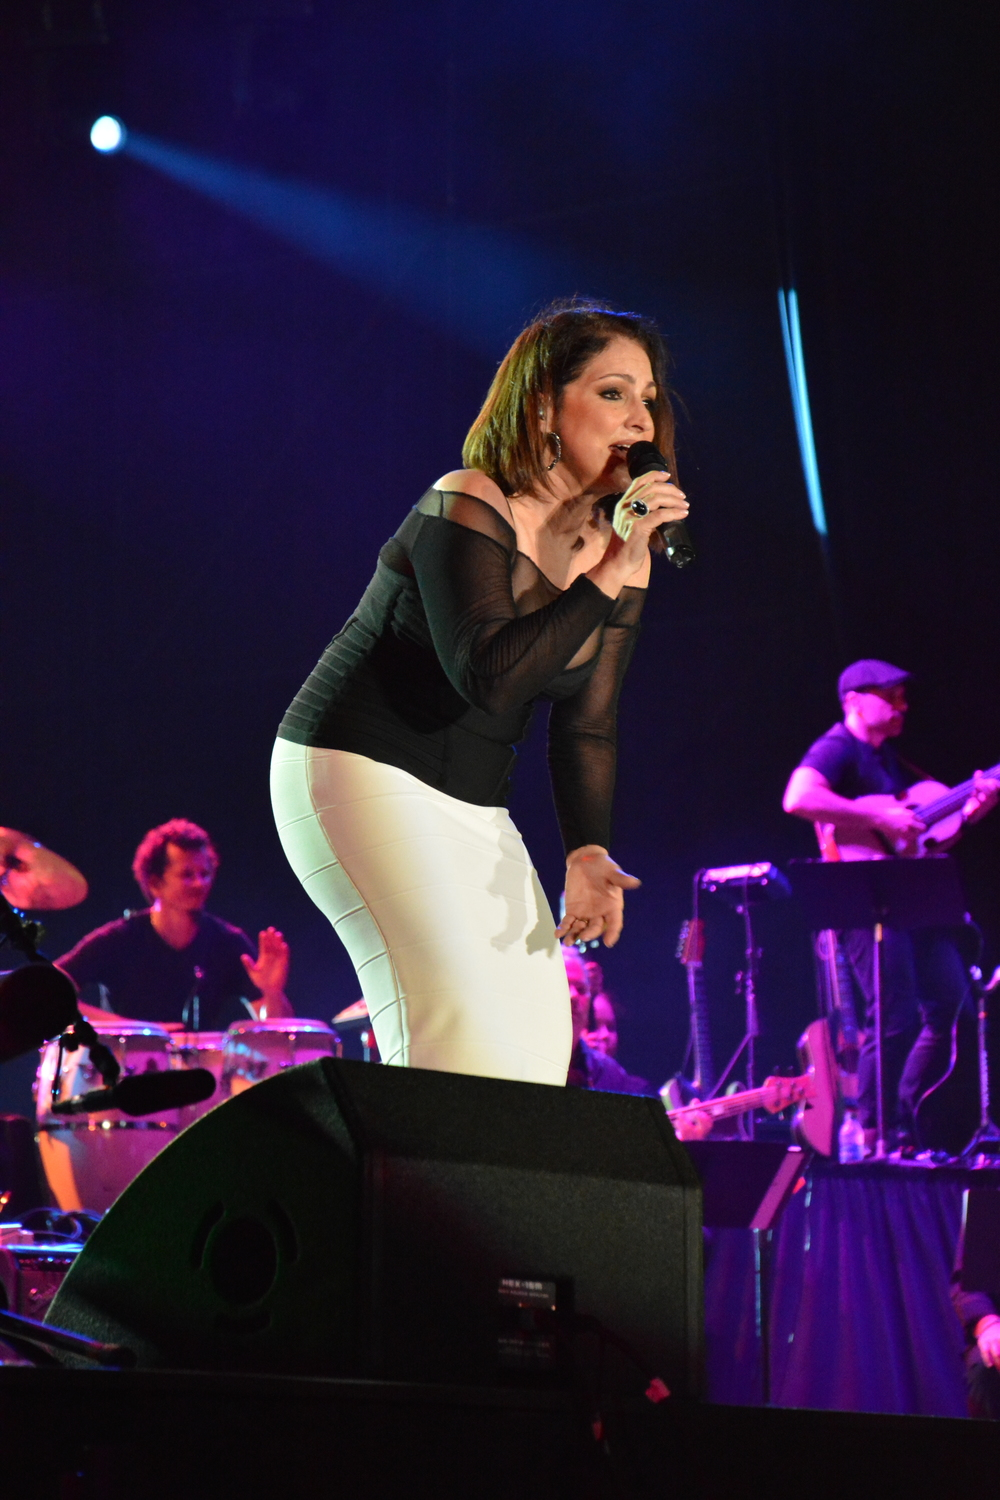 Miami music legend Gloria Estefan moves the crowd